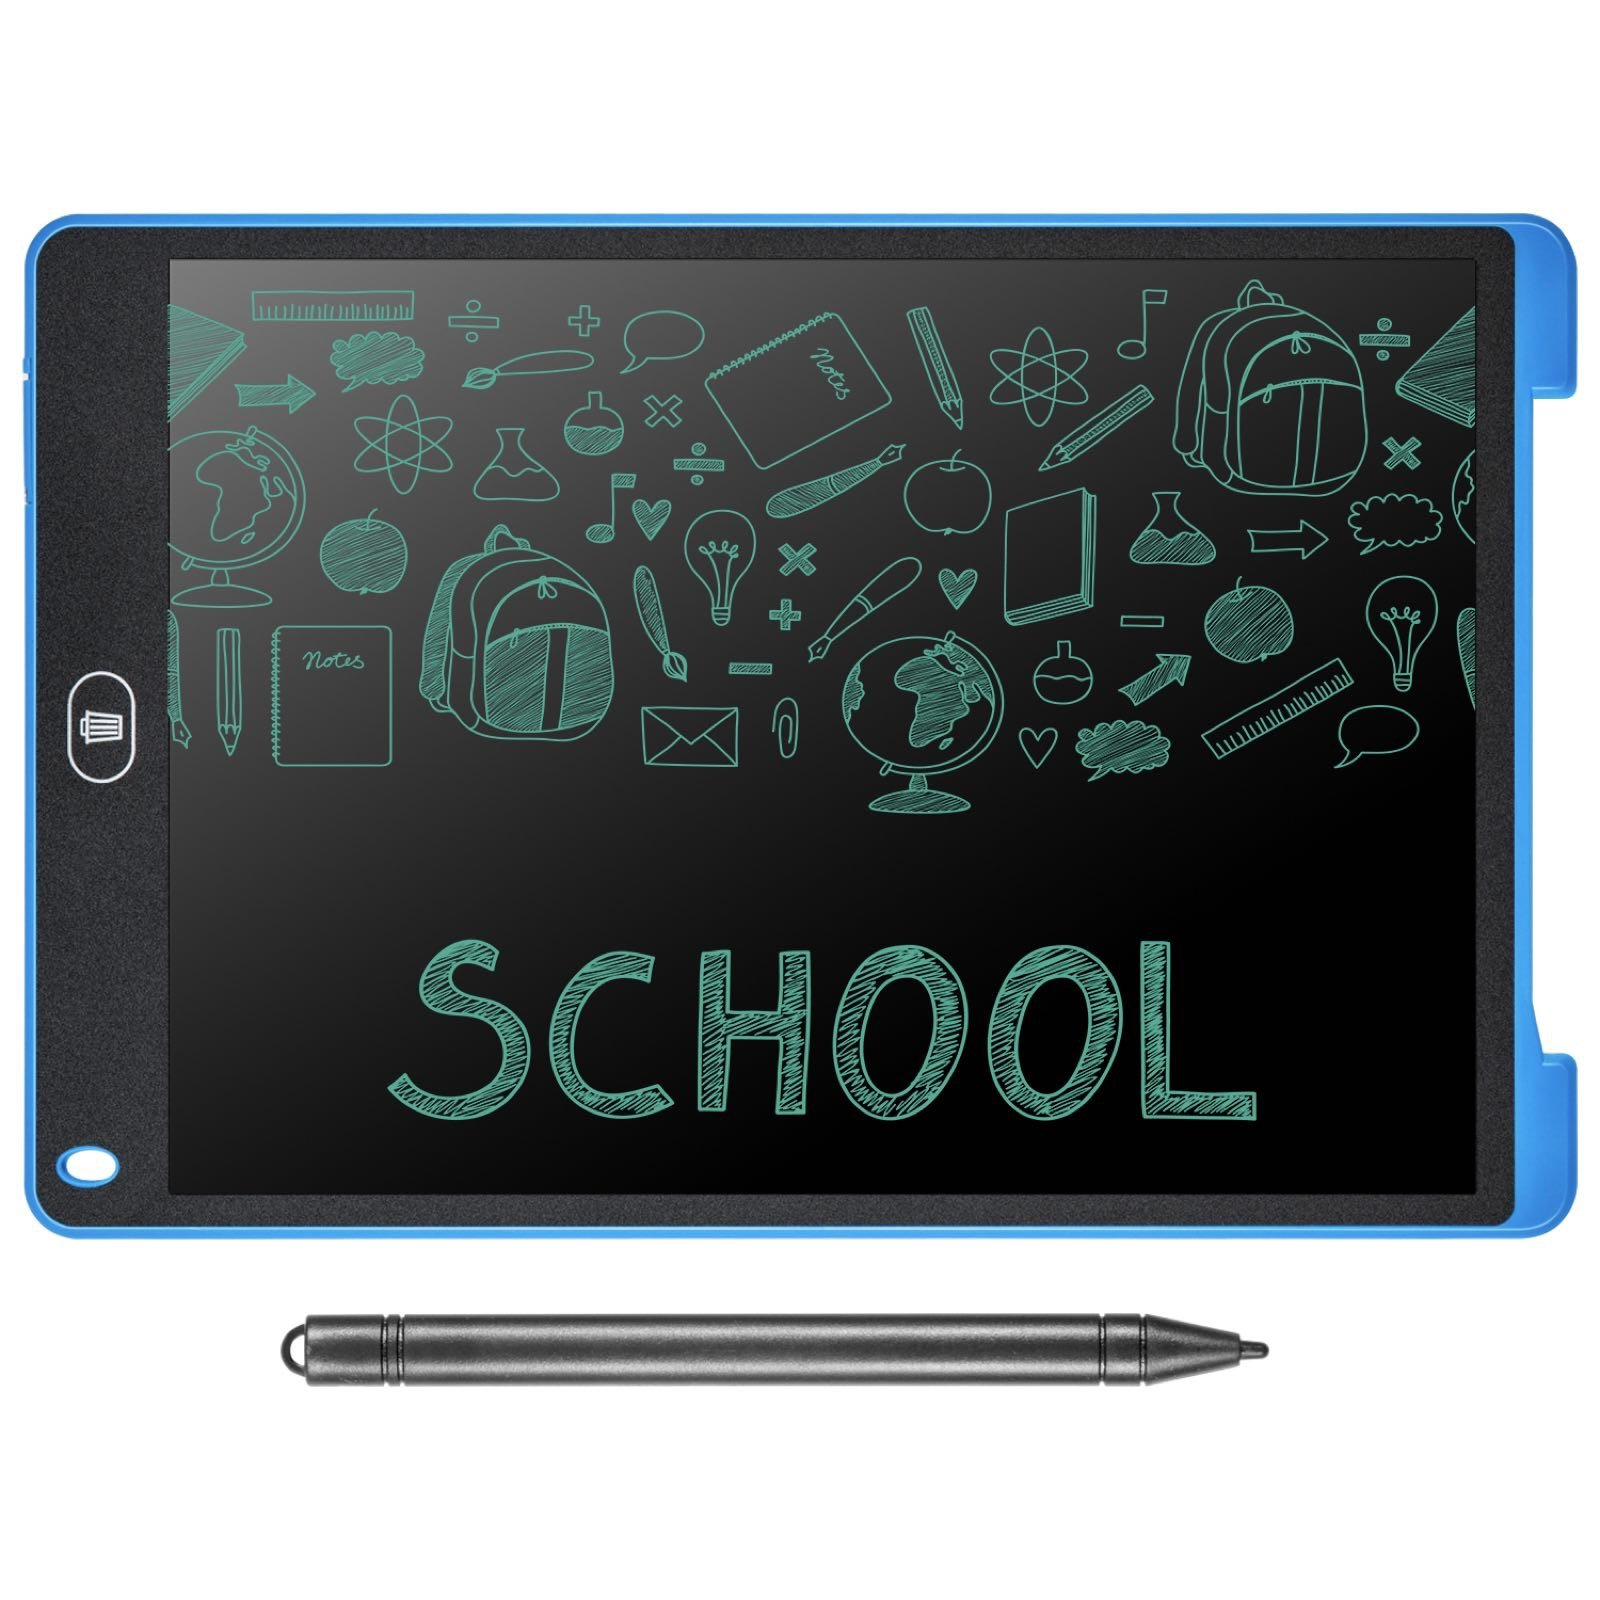 Dennov 12 inch Digital LCD Writing Drawing Tablet Pad Handwriting Drawing Sketching Graffiti Scribble Doodle Board